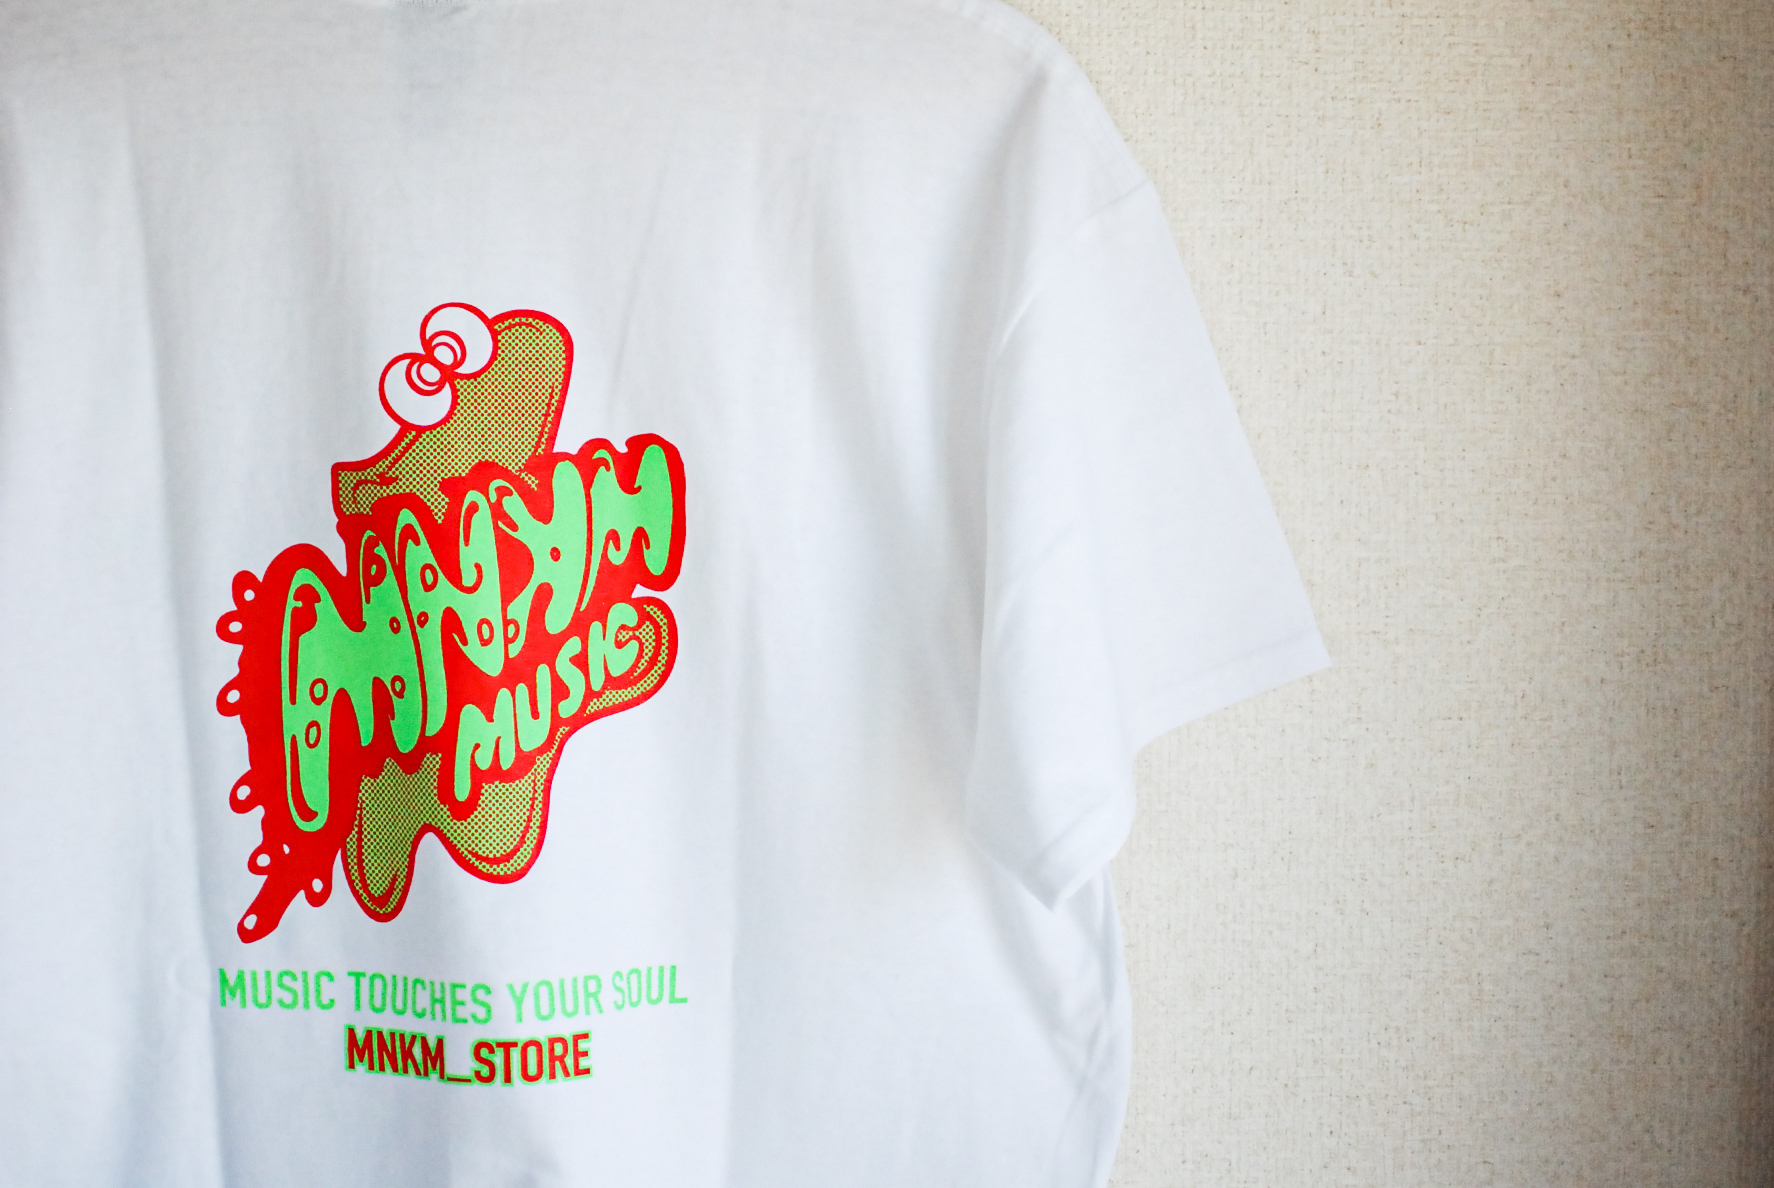 【BIG SIZE】MNKM Music Shop Tee